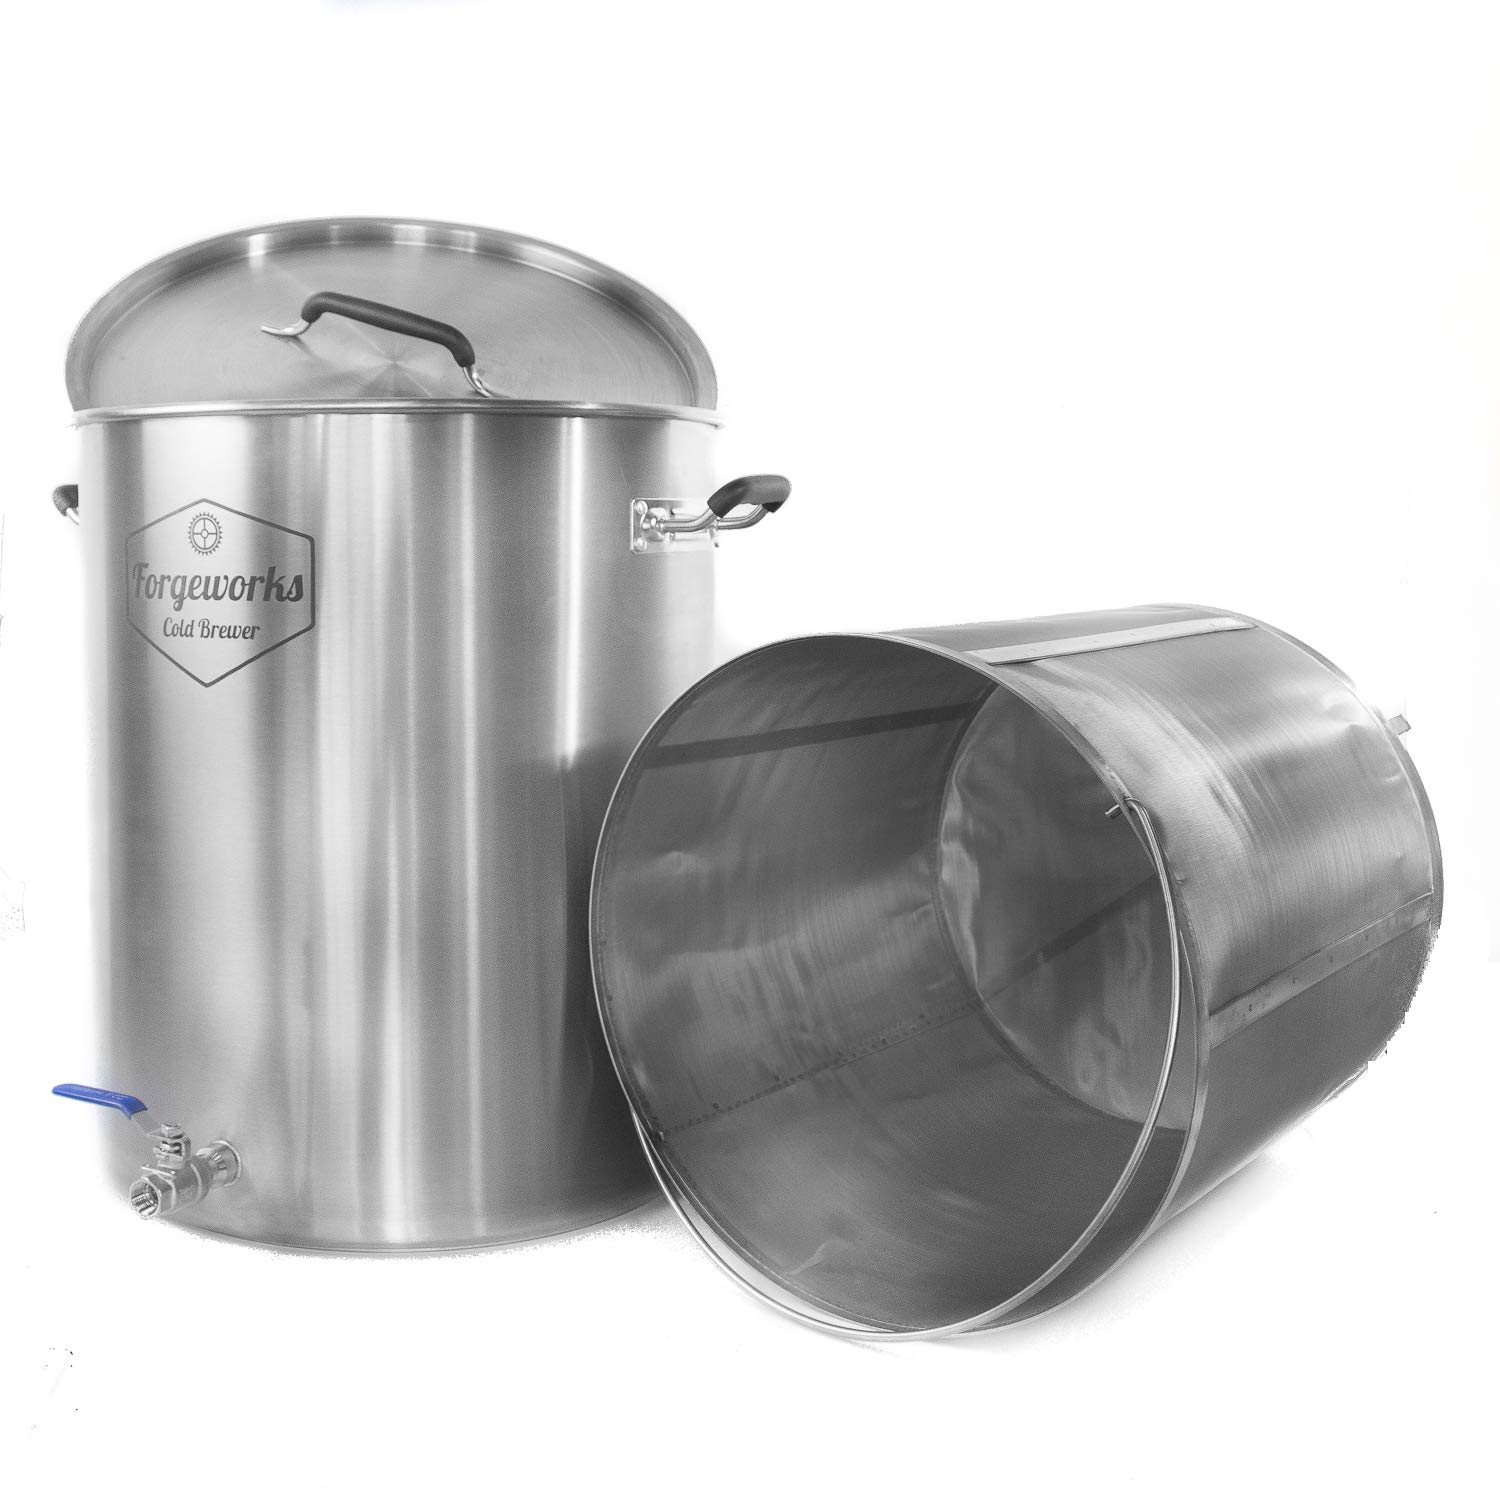 Forgeworks Cold Brewer - Commercial 20 Gallon Capacity Stainless Steel Cold Brew Vessel by Forgeworks Stainless (Image #3)